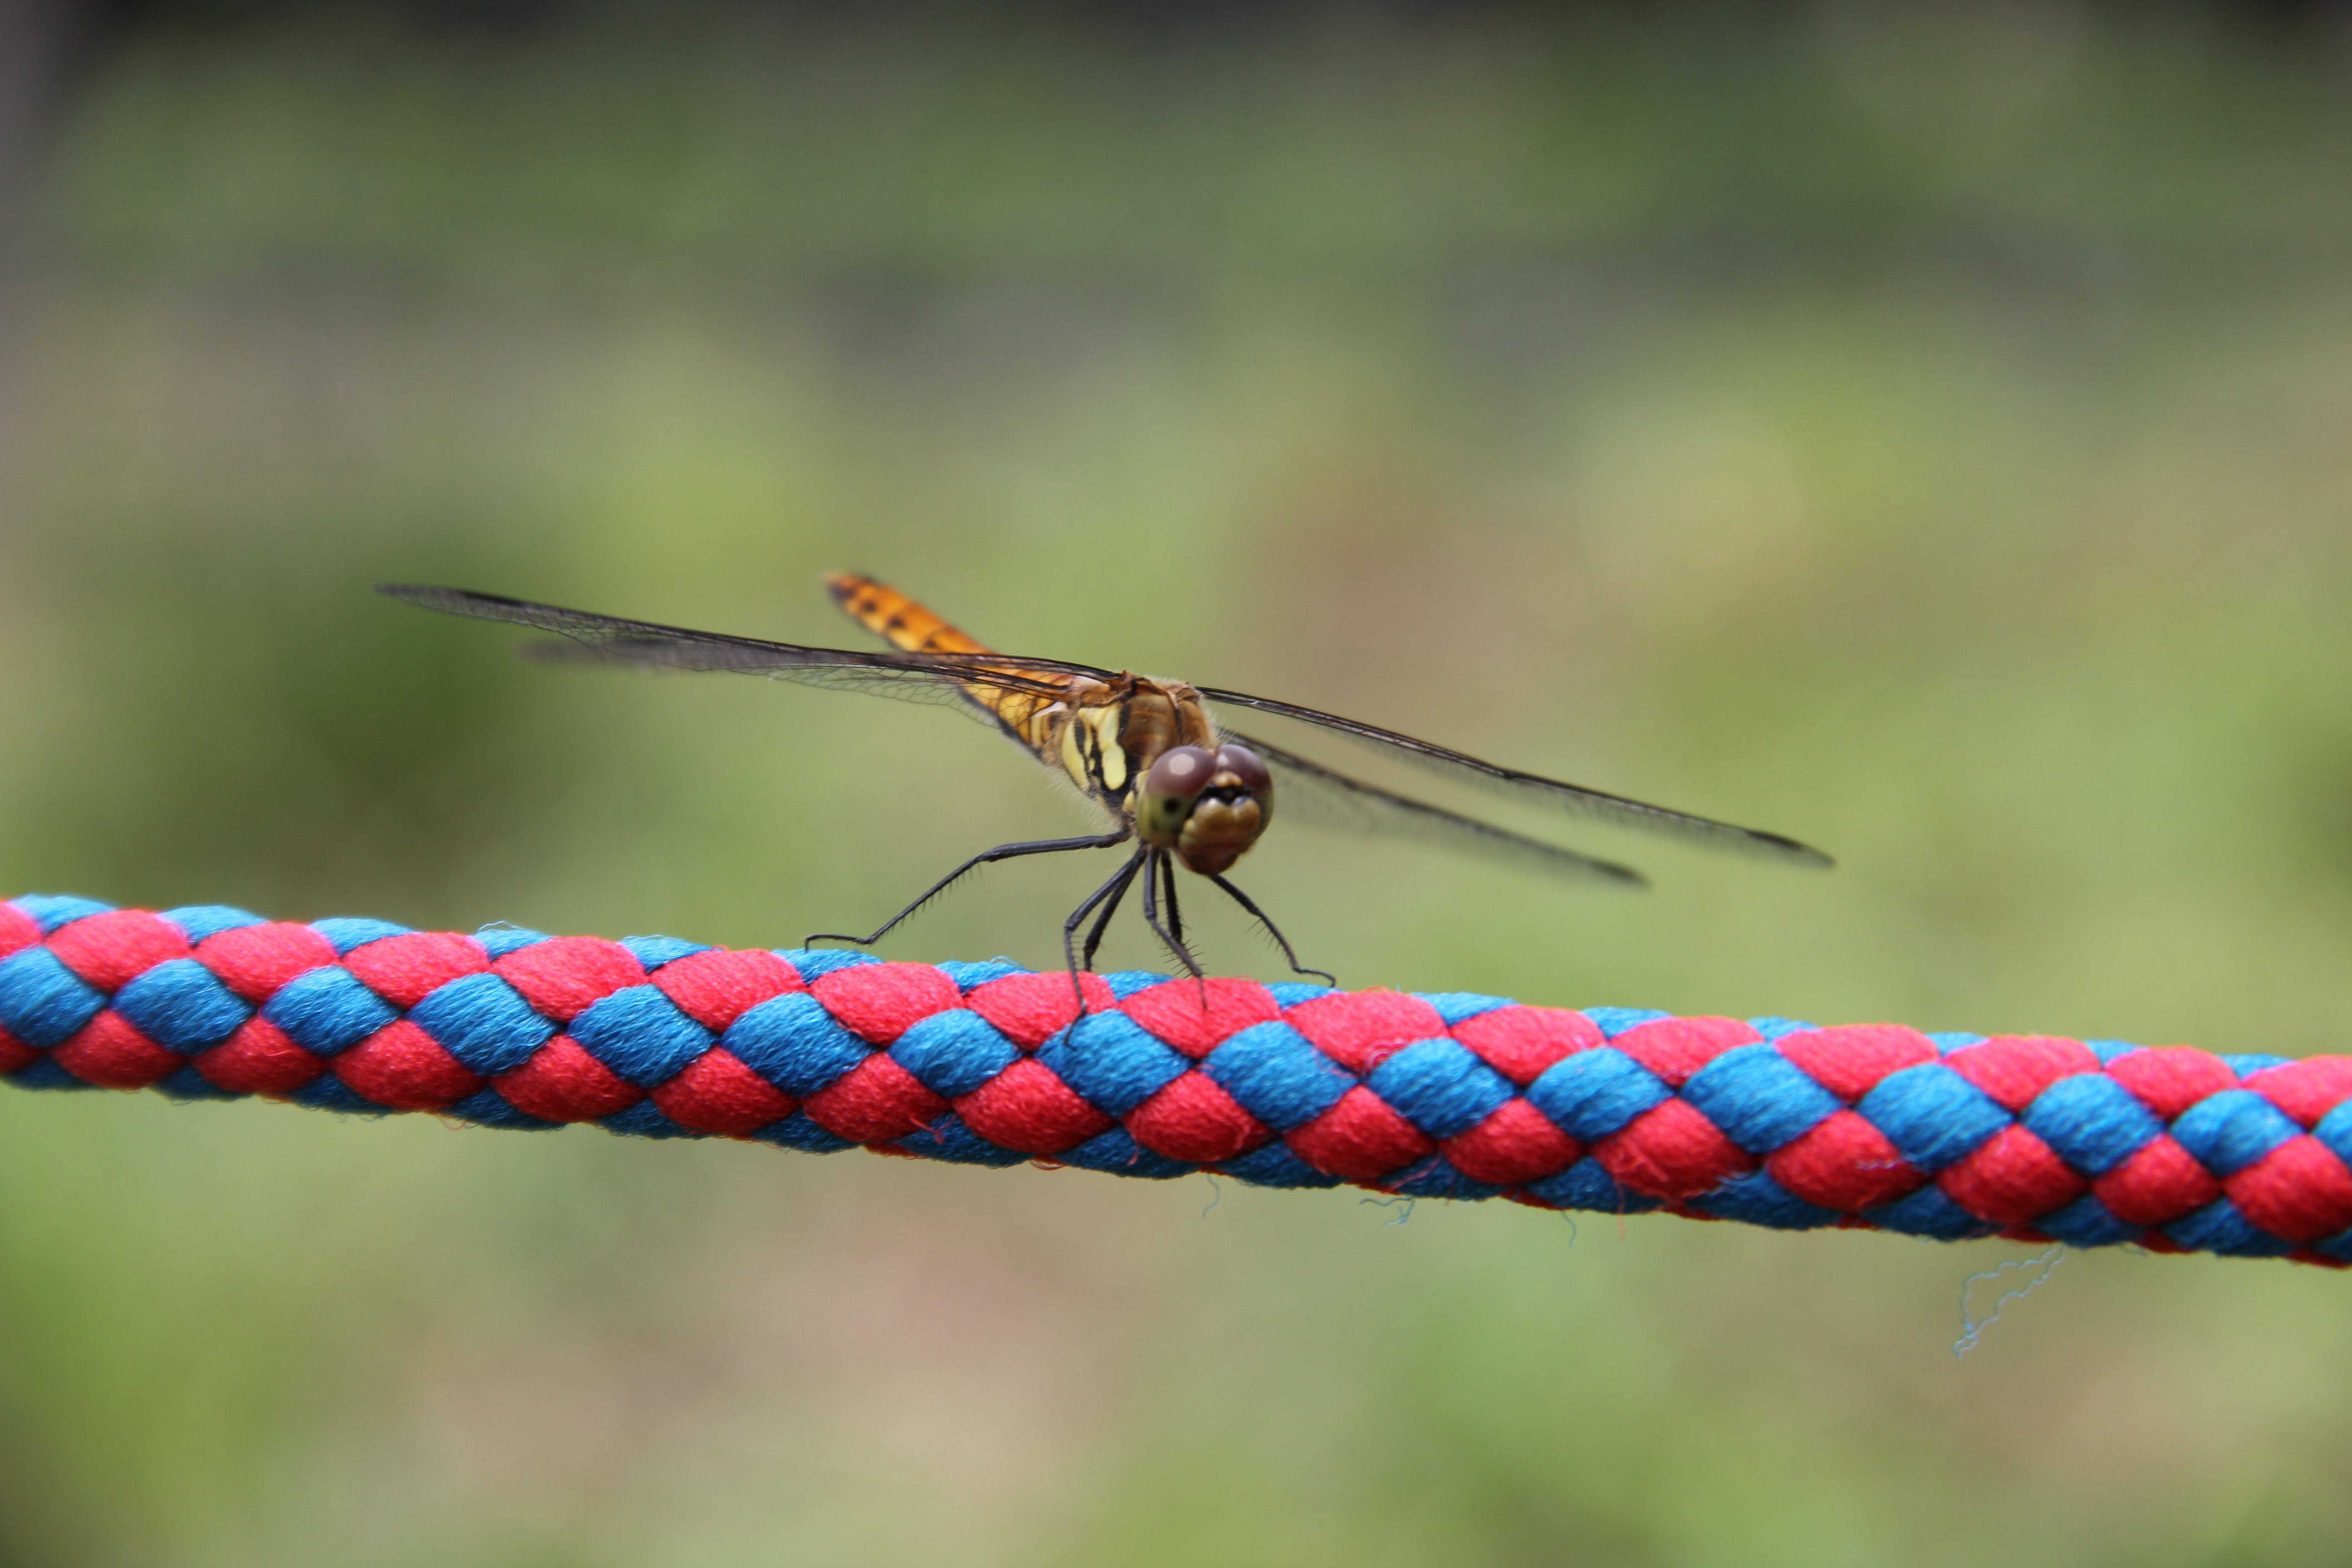 Focus Photography of Brown Skimmer Insect